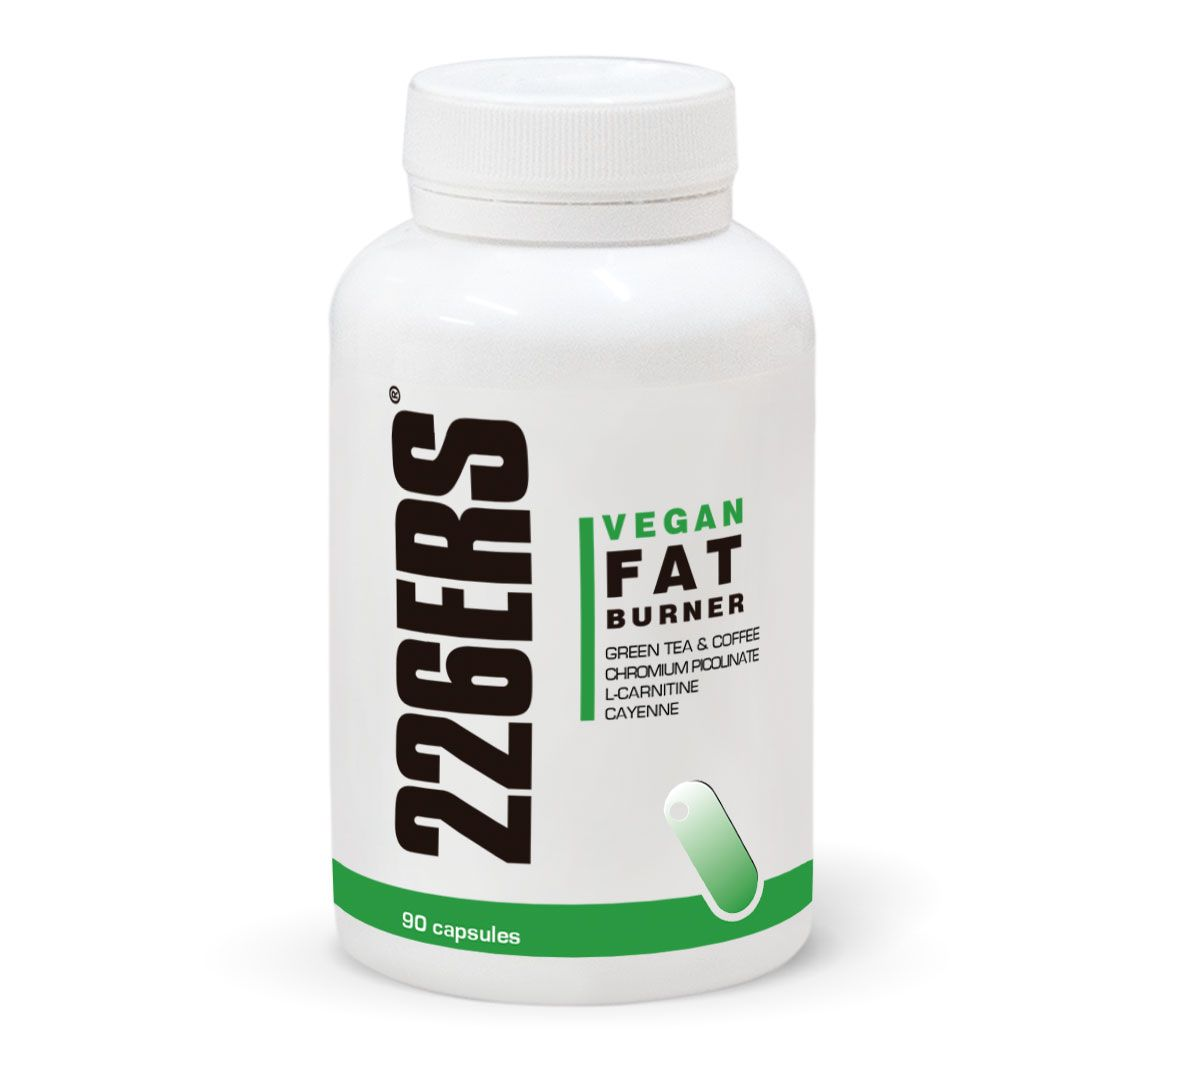 226ERS Vegan Fat Burner e Vegan Vitamin